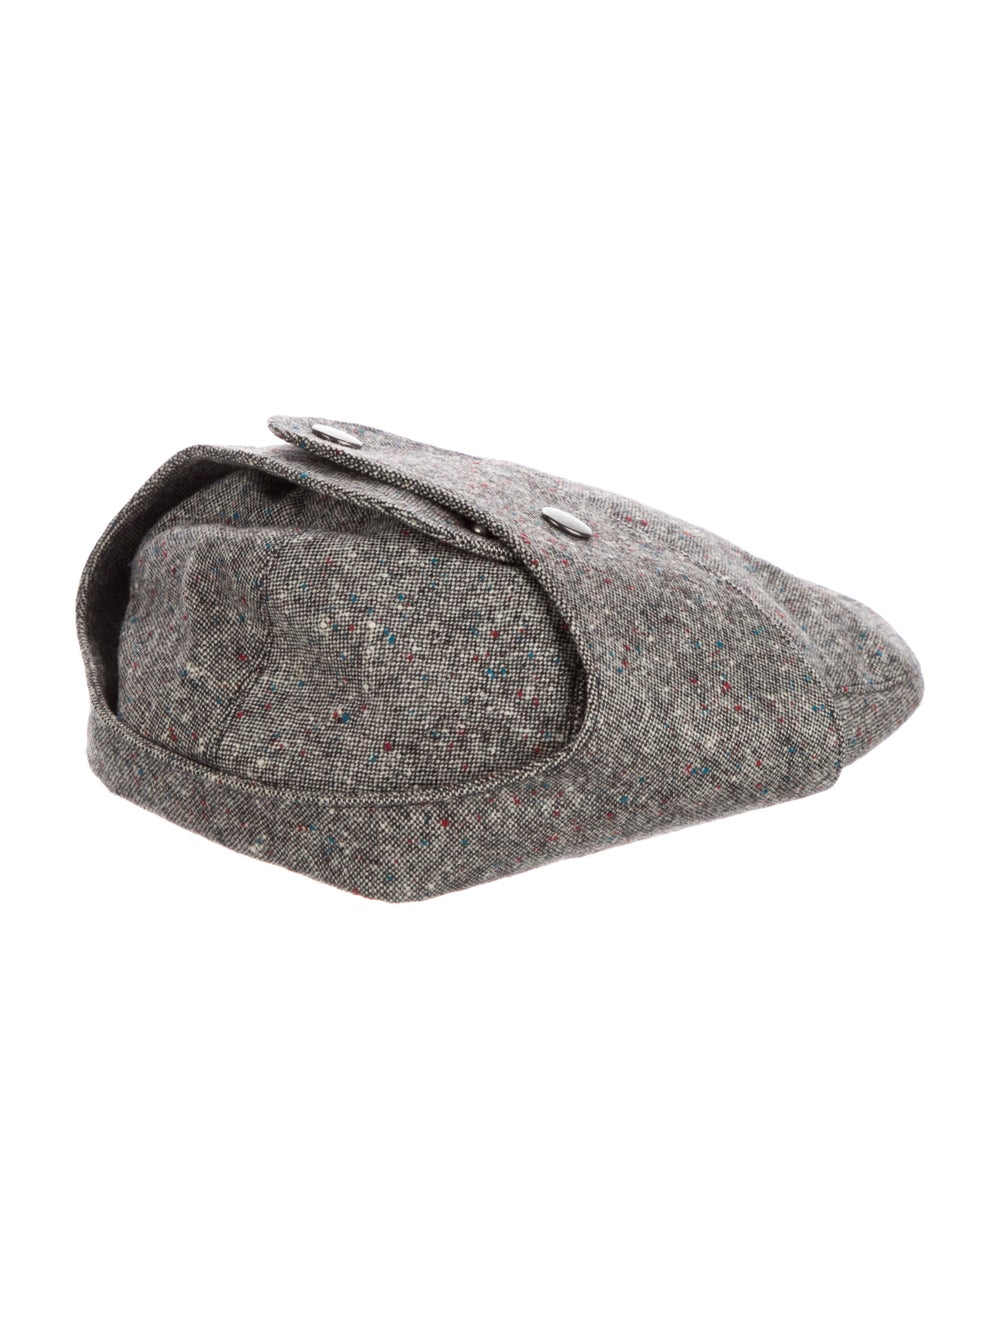 Christian Dior Wool Speckled Hat Grey - image 2